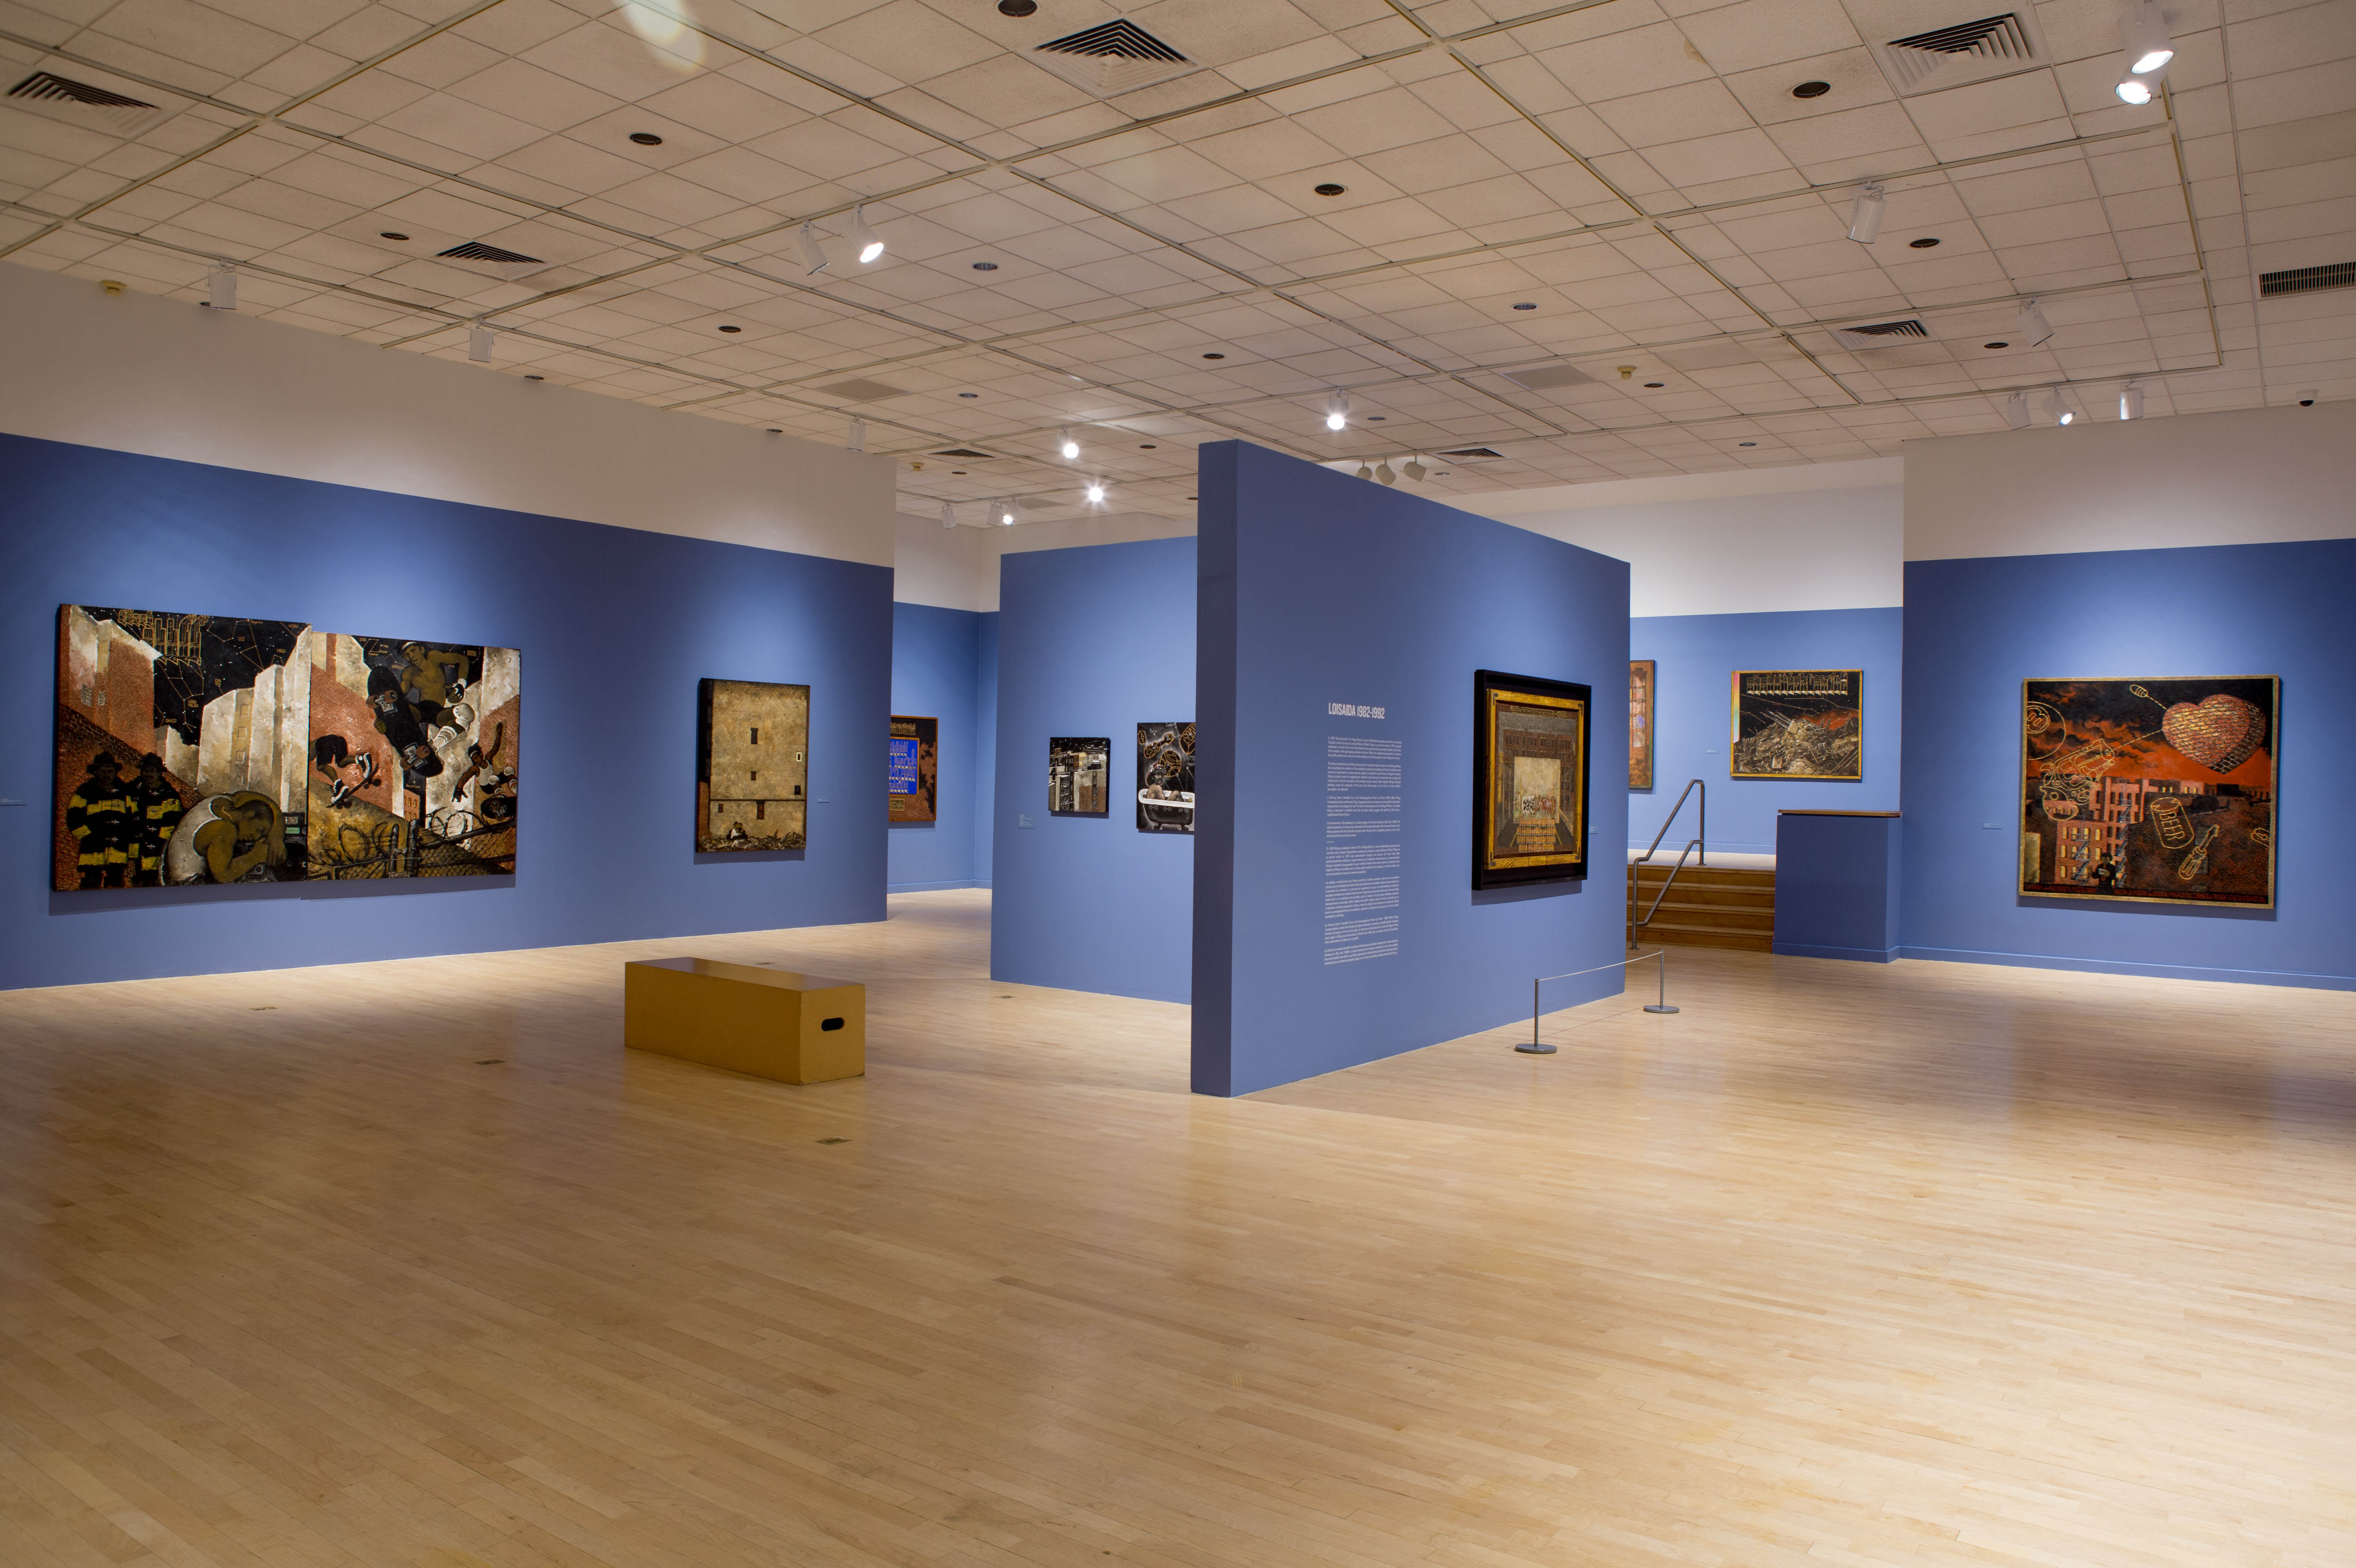 Installation view of 'Martin Wong: Human Instamatic' at The Bronx Museum. Photo by Joel Greenberg